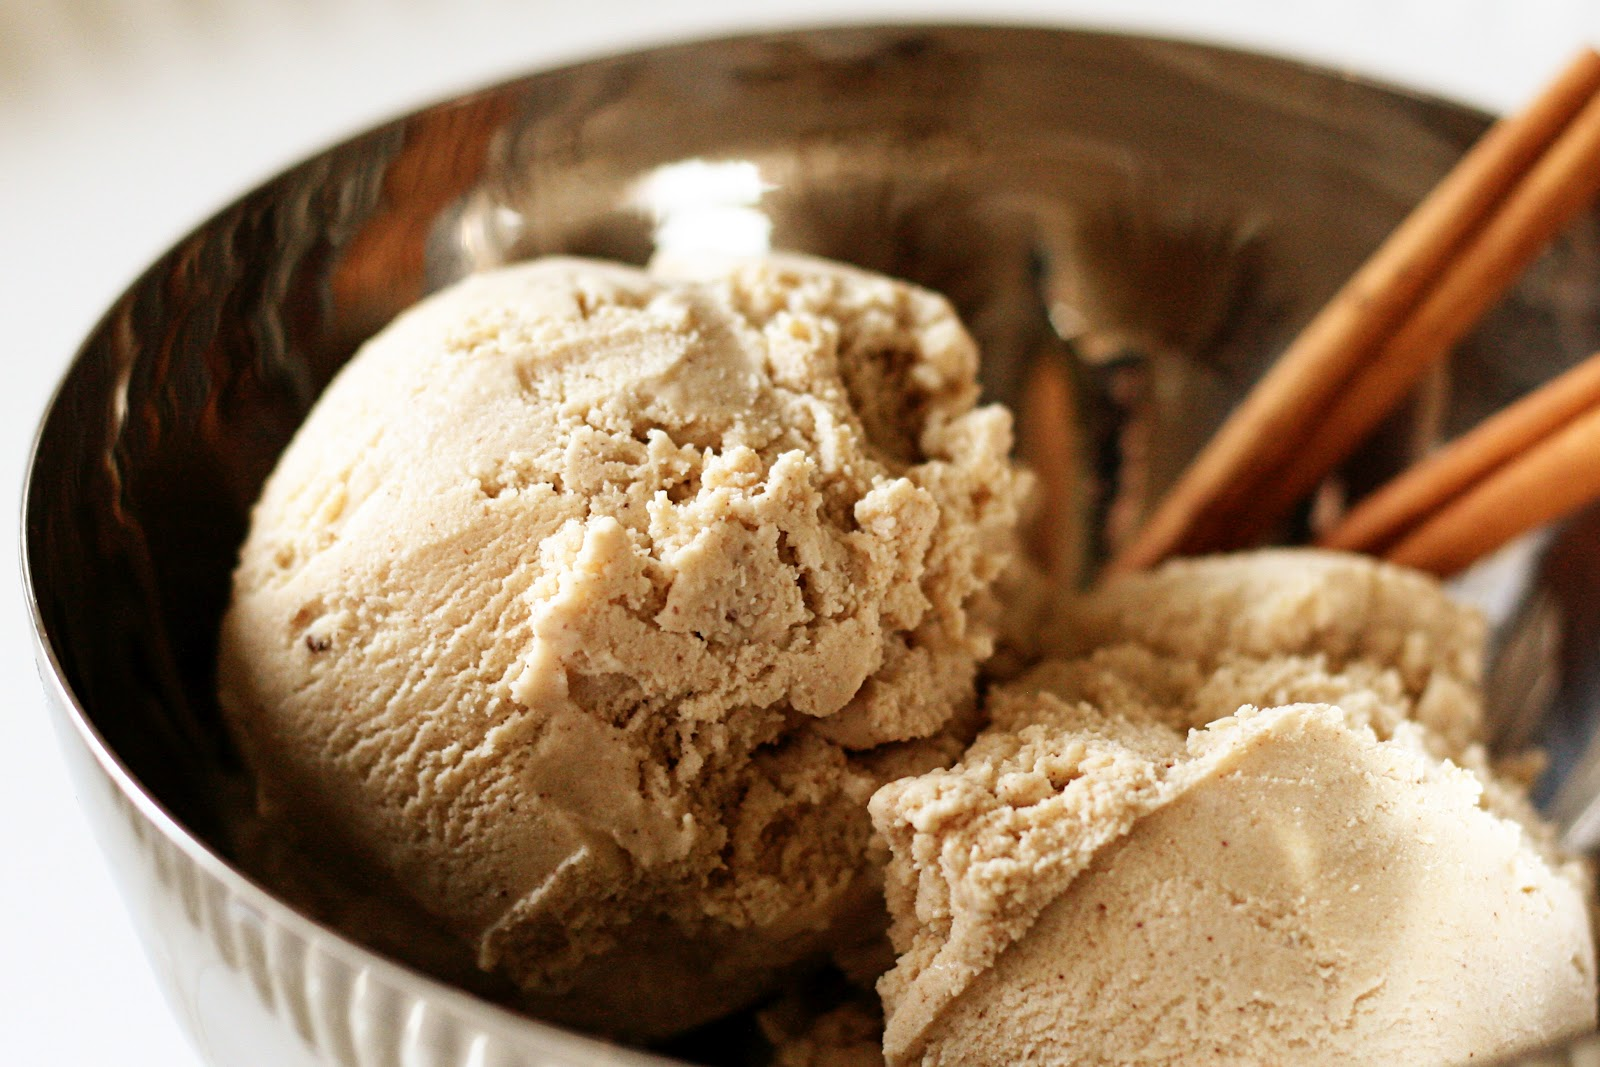 ... vegan cinnamon ice cream cinnamon dolce ice cream cinnamon ice cream